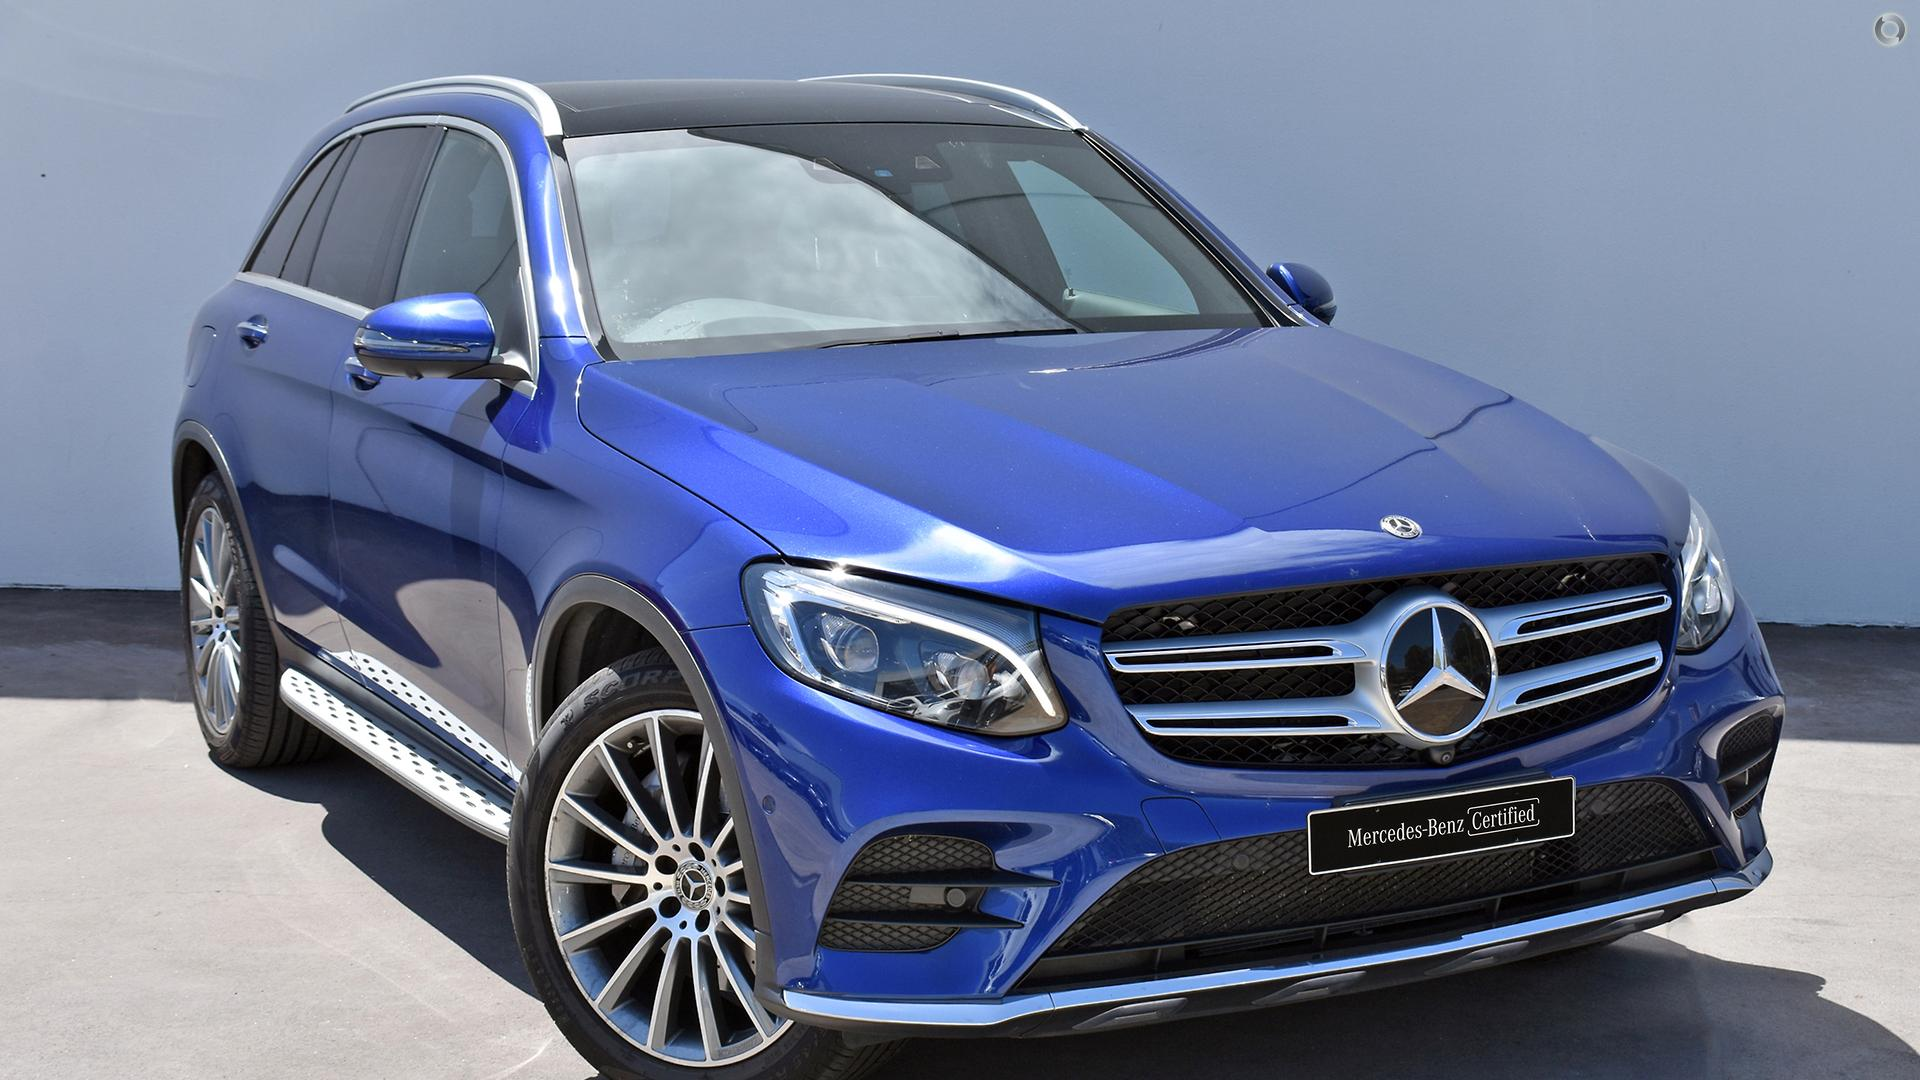 2017 Mercedes-Benz GLC 350 D Wagon